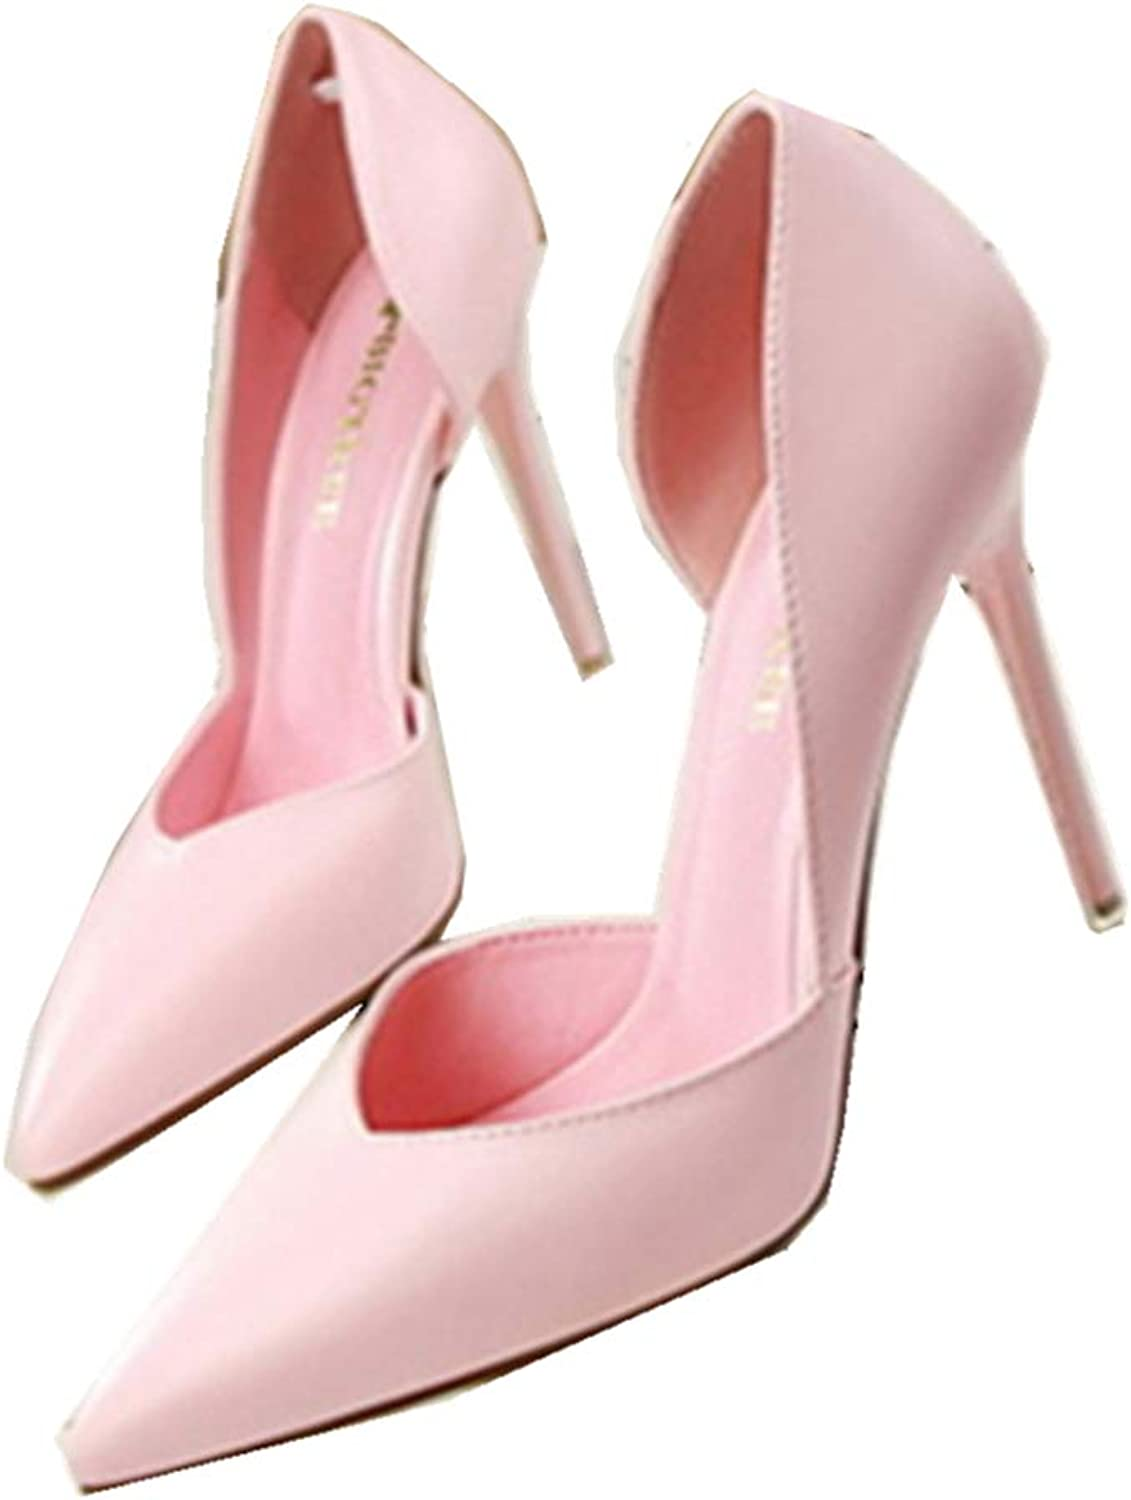 YYZHAO Classic Slip On Pointed Toe High Heel Wedding Dress Pumps shoes